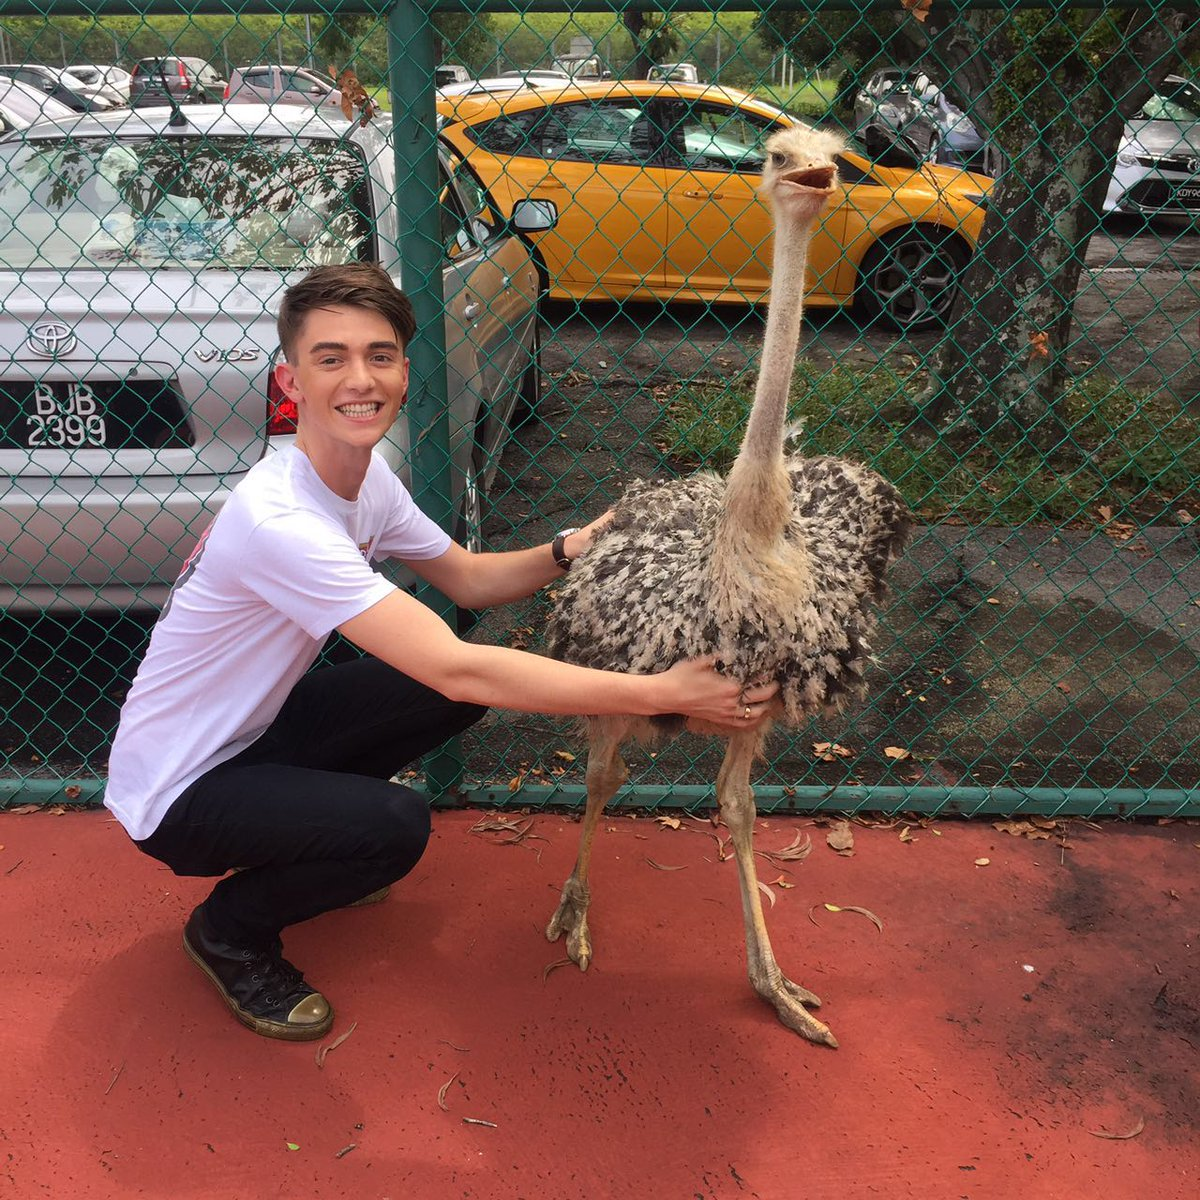 Cheekaboo has gone international... Greyson Chance just had to meet him  #GreysonInMalaysia https://t.co/o8Q1RSLWFy